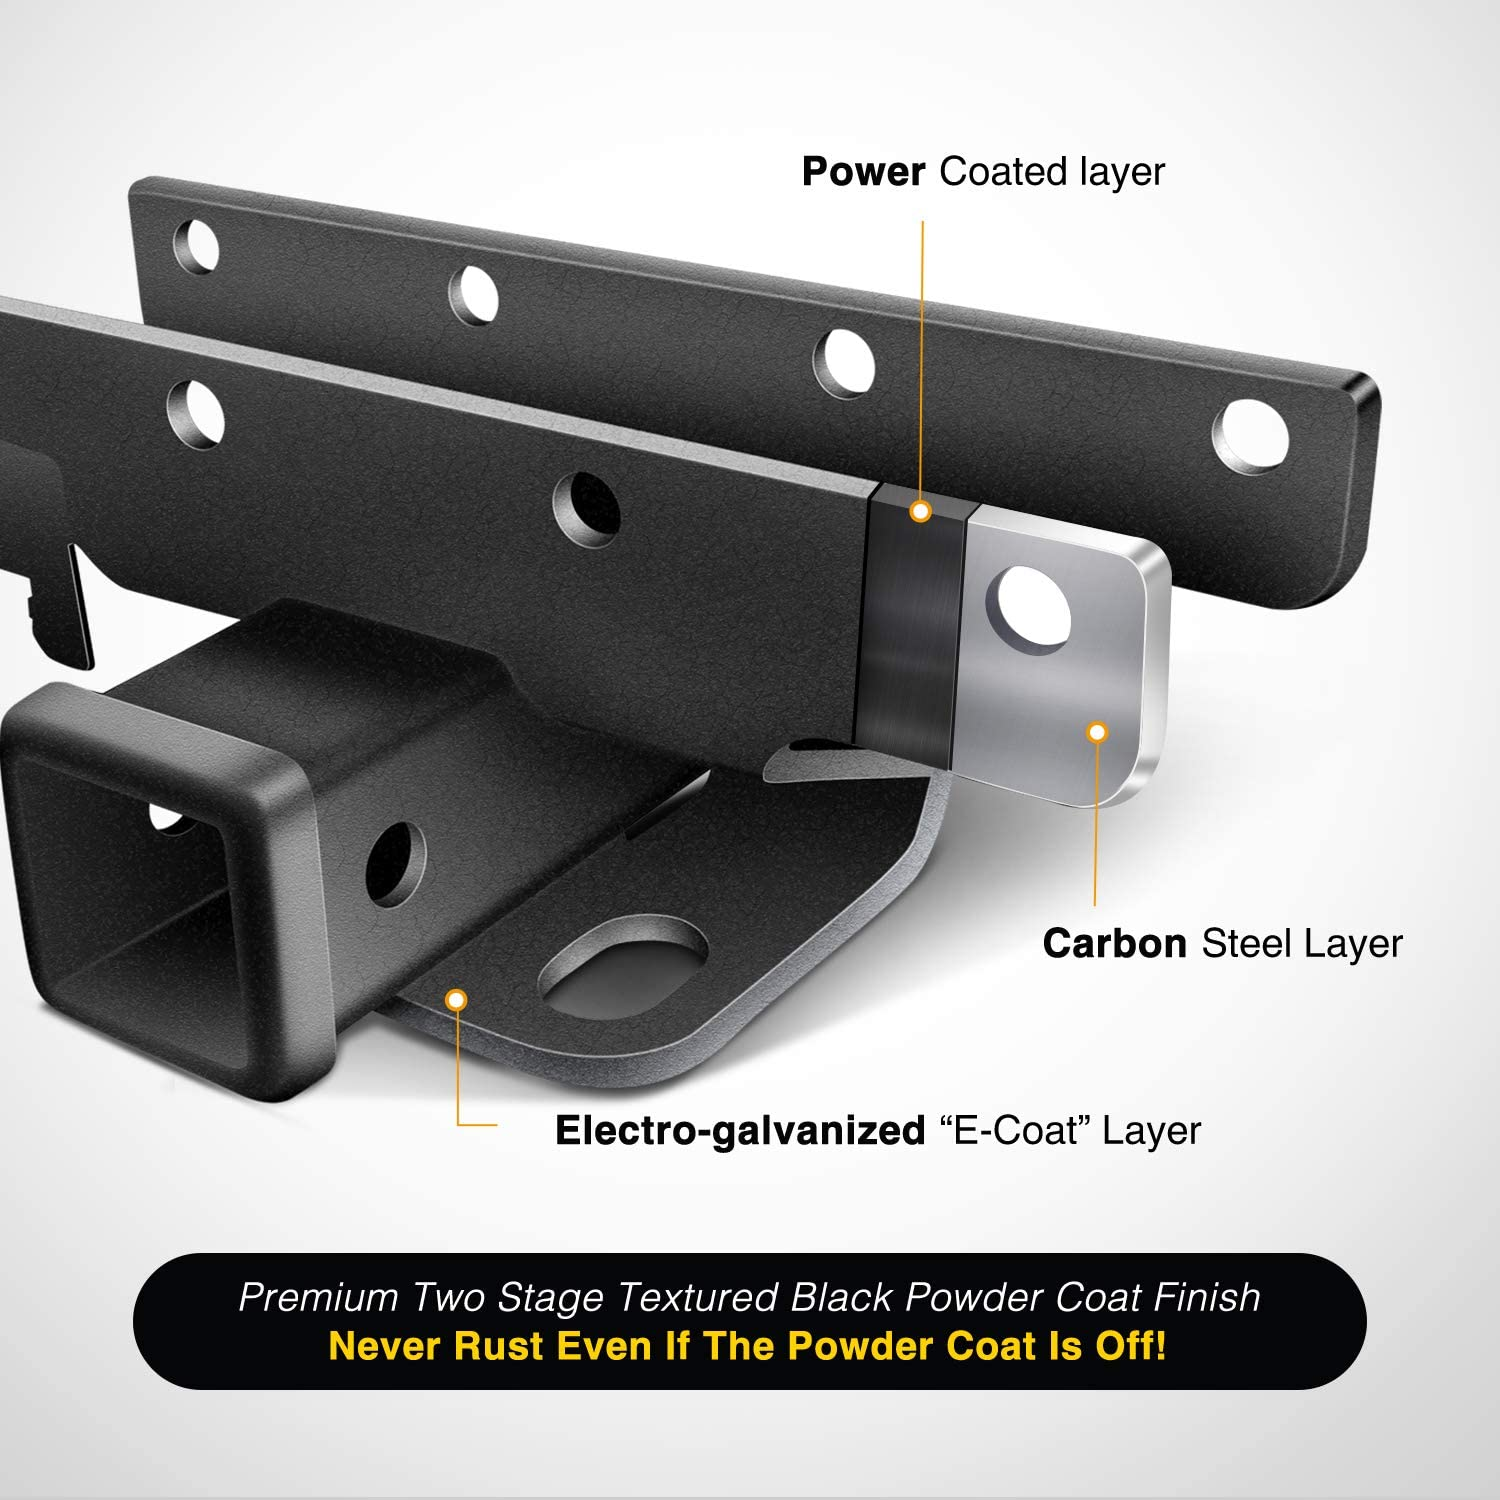 Exclude JL Models Nilight JK-61A 2 inch Rear Bumper Tow Trailer Hitch Receiver Kit Compatible for 2007-2018 Jeep Wrangler JK 4 Door /& 2 Door Unlimited w//4-Pin Wiring Harness